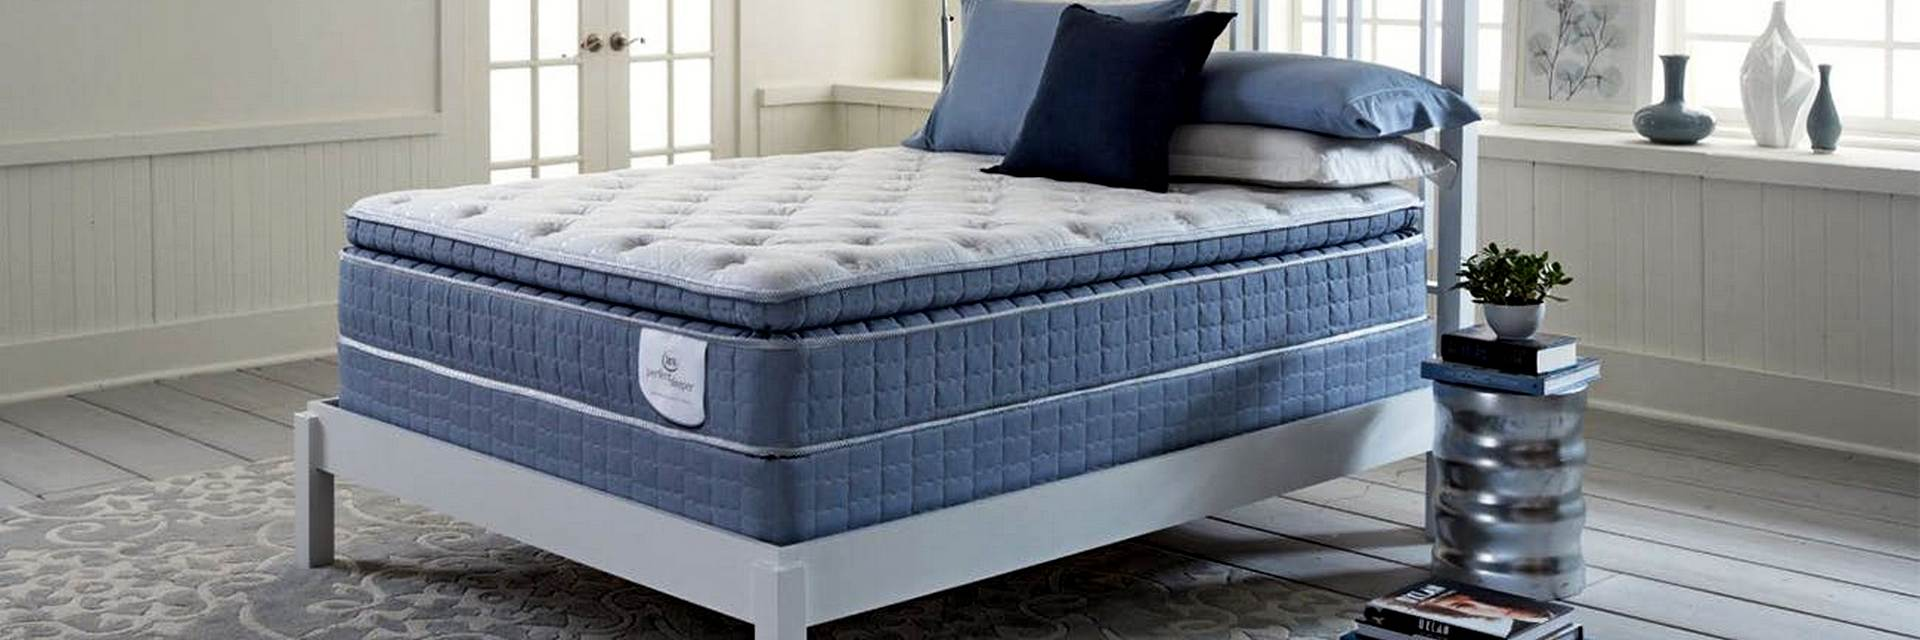 Best Traditional Mattress 10 Best Mattresses Under 300 Jun 2019 Reviews Buying Guide